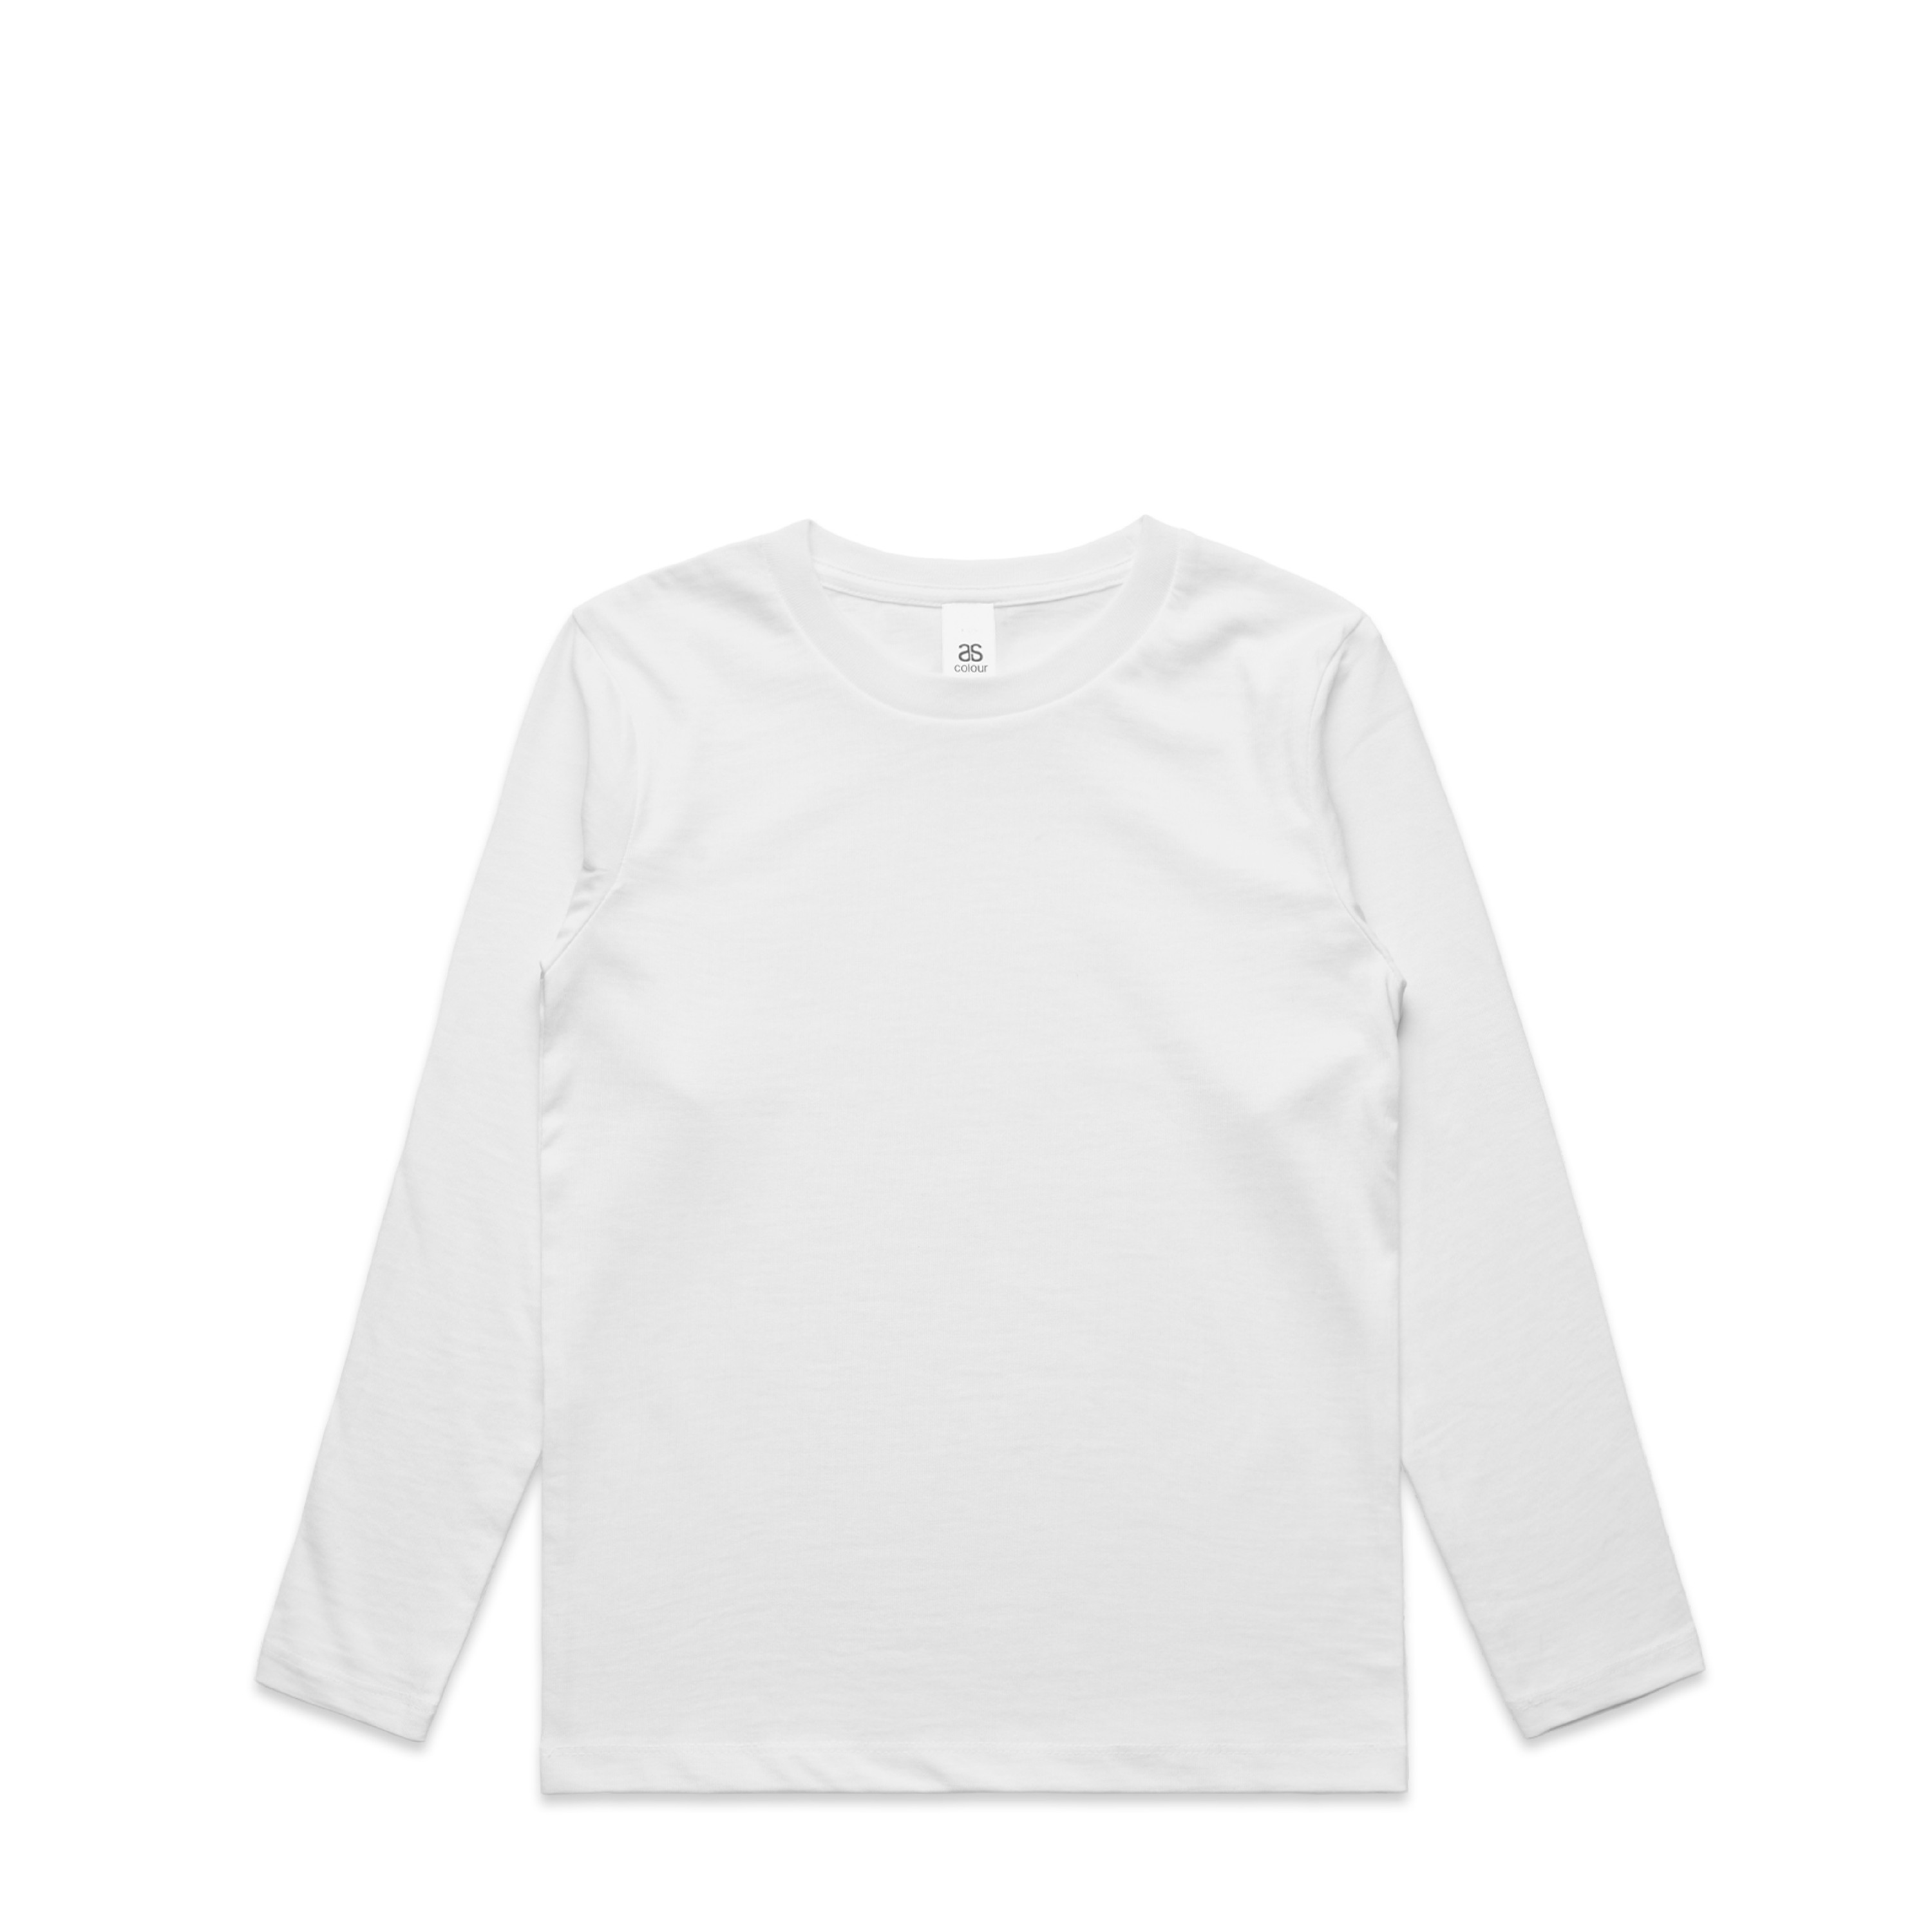 Youth L/S Tee - 3008